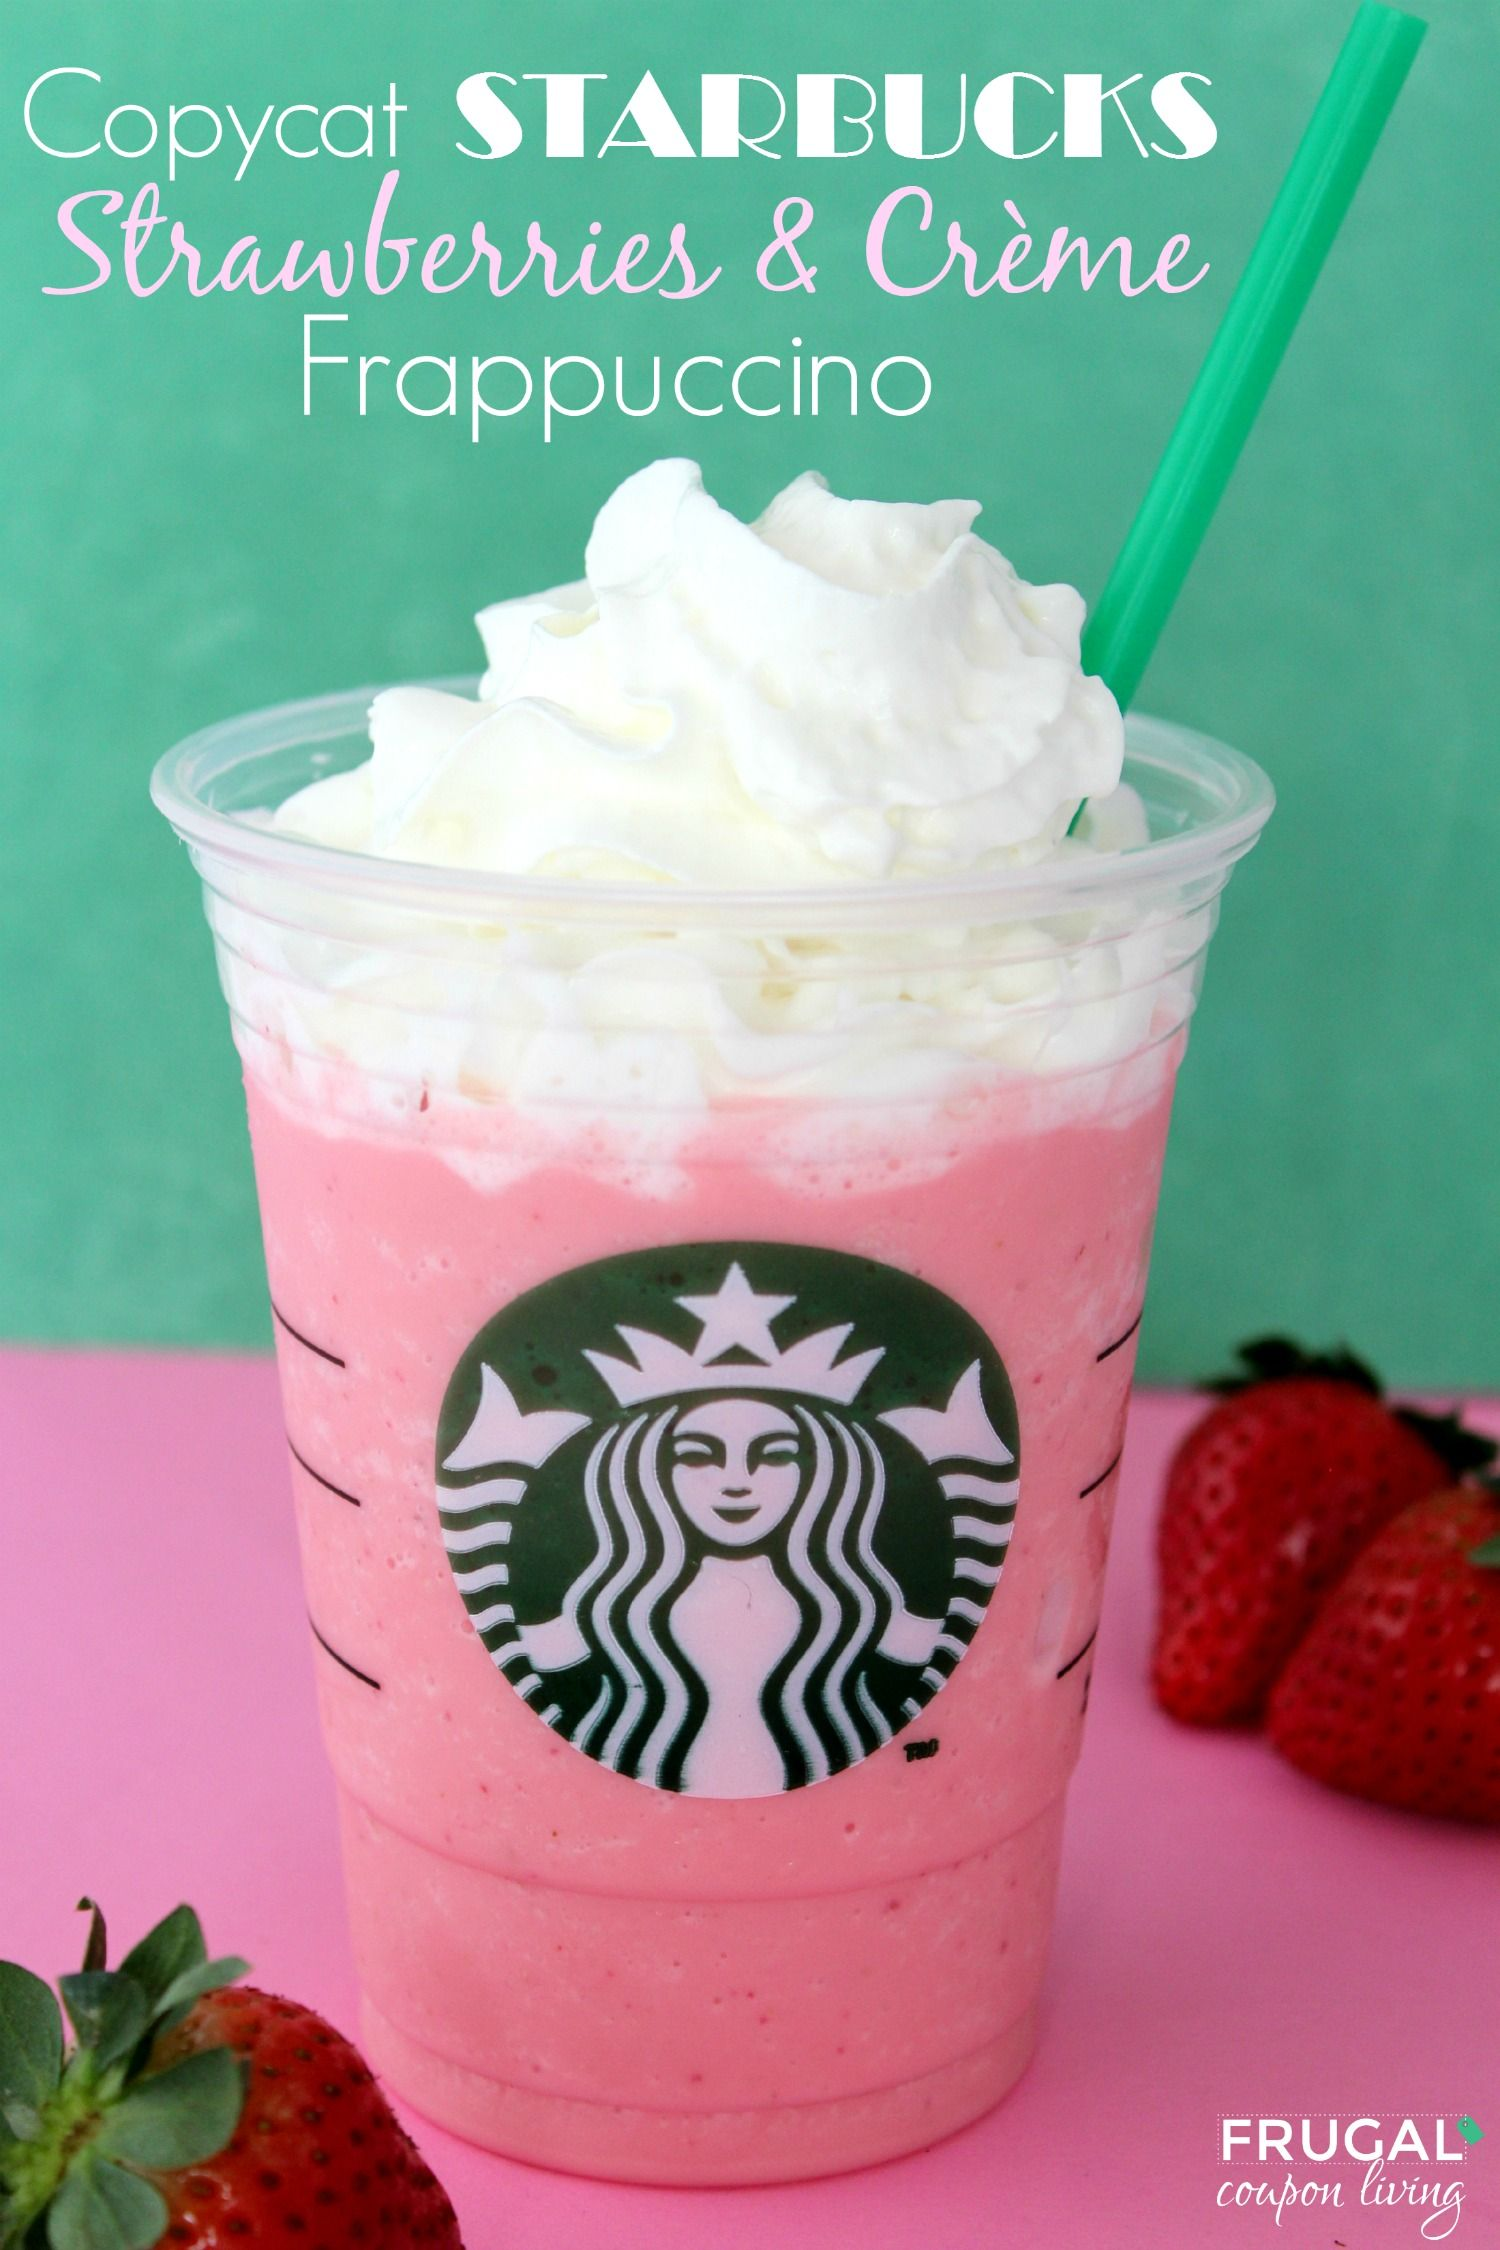 how to make starbucks frappuccino at home